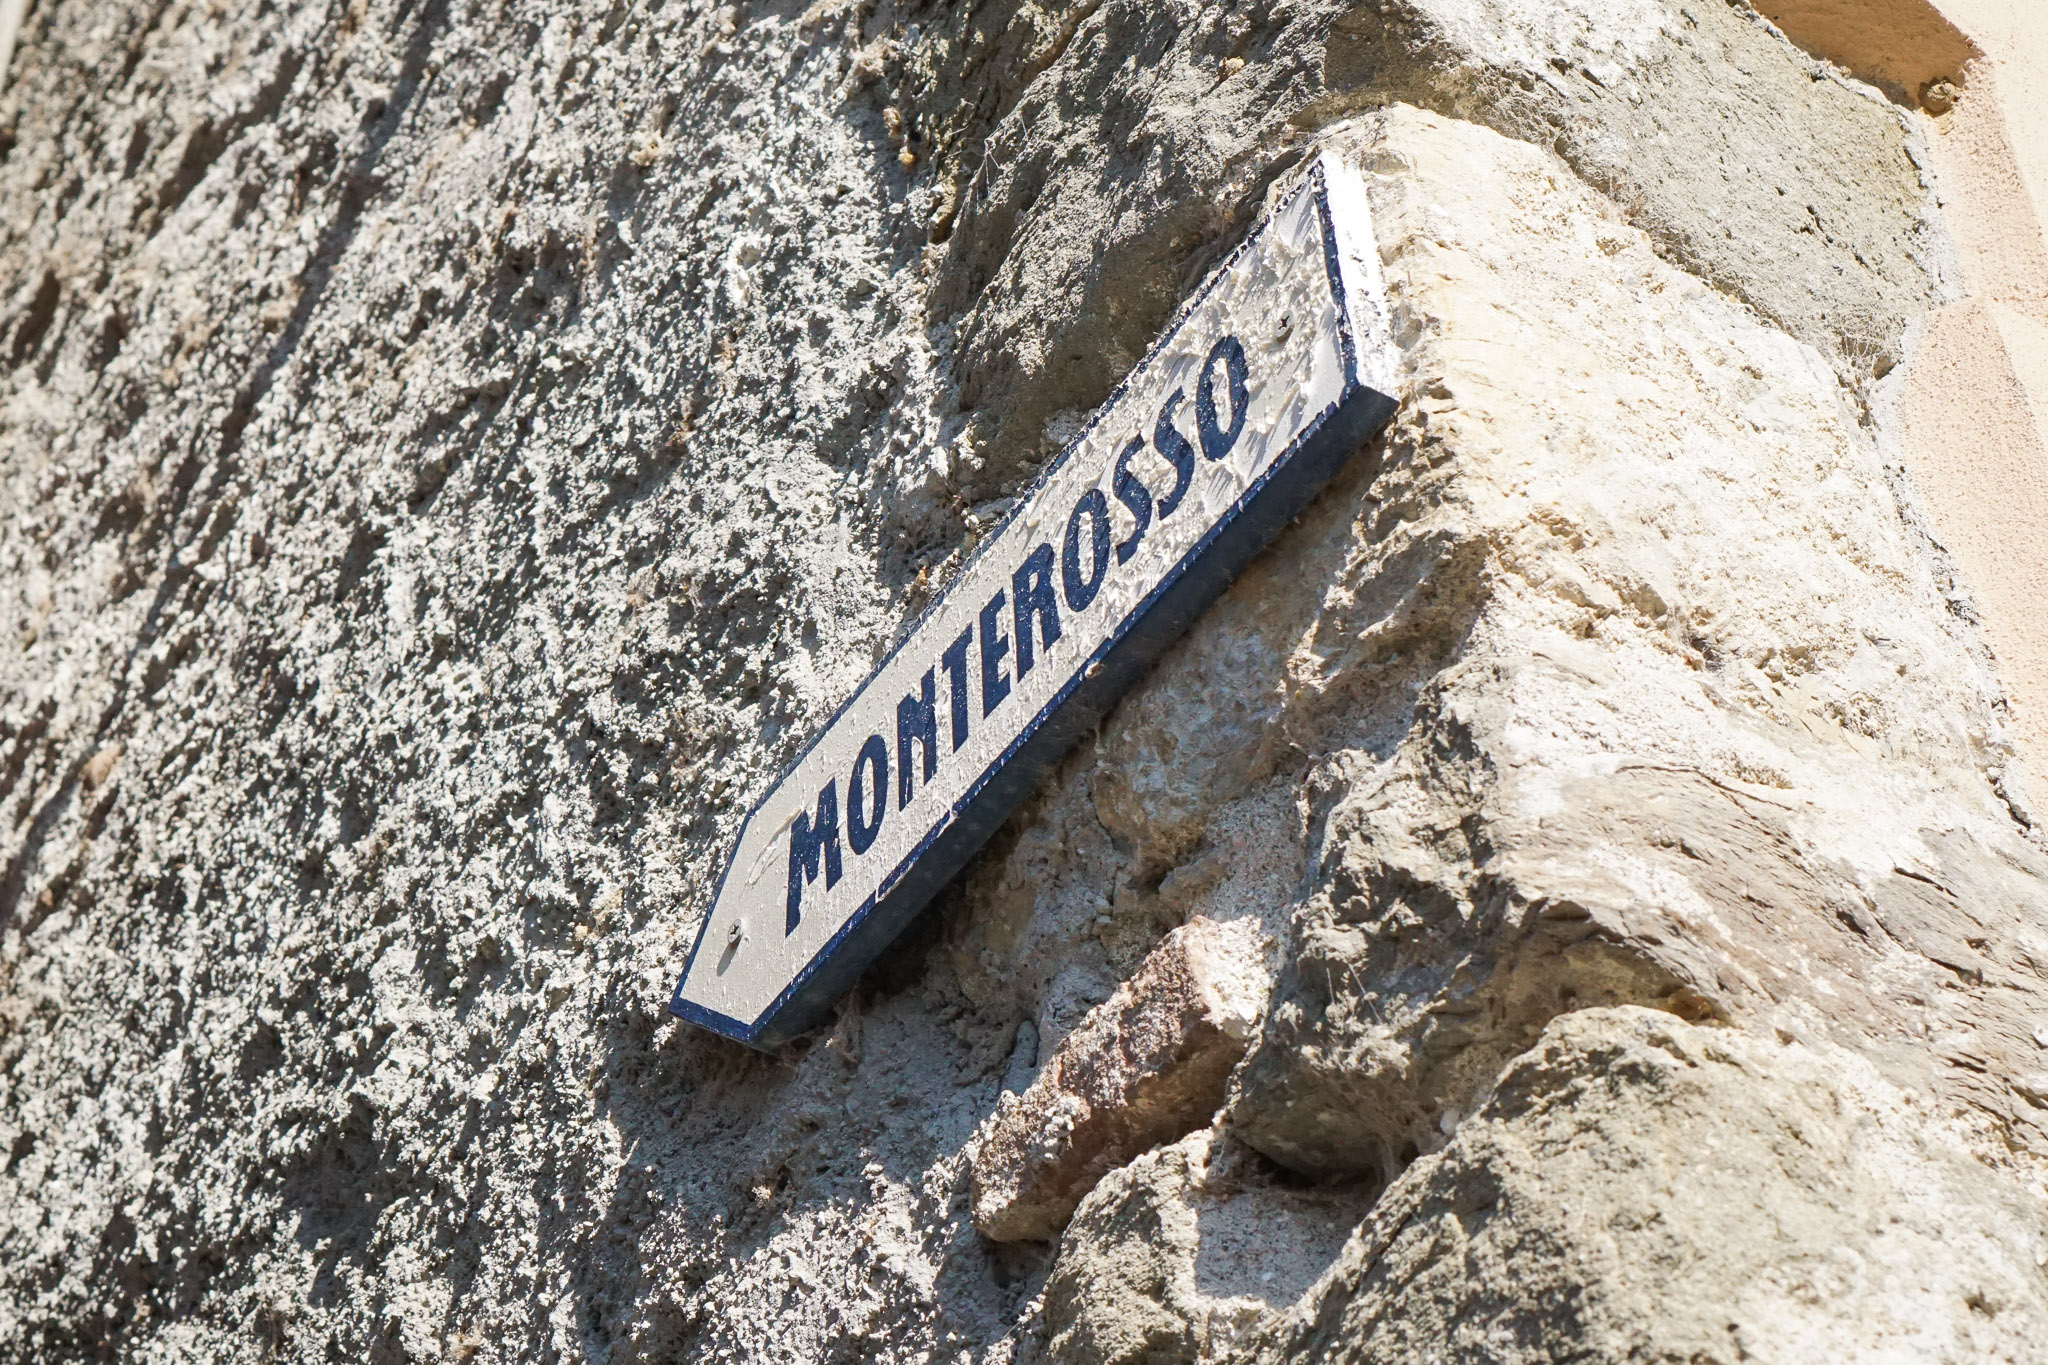 The sign pointing the way to Monterosso from Vernazza.